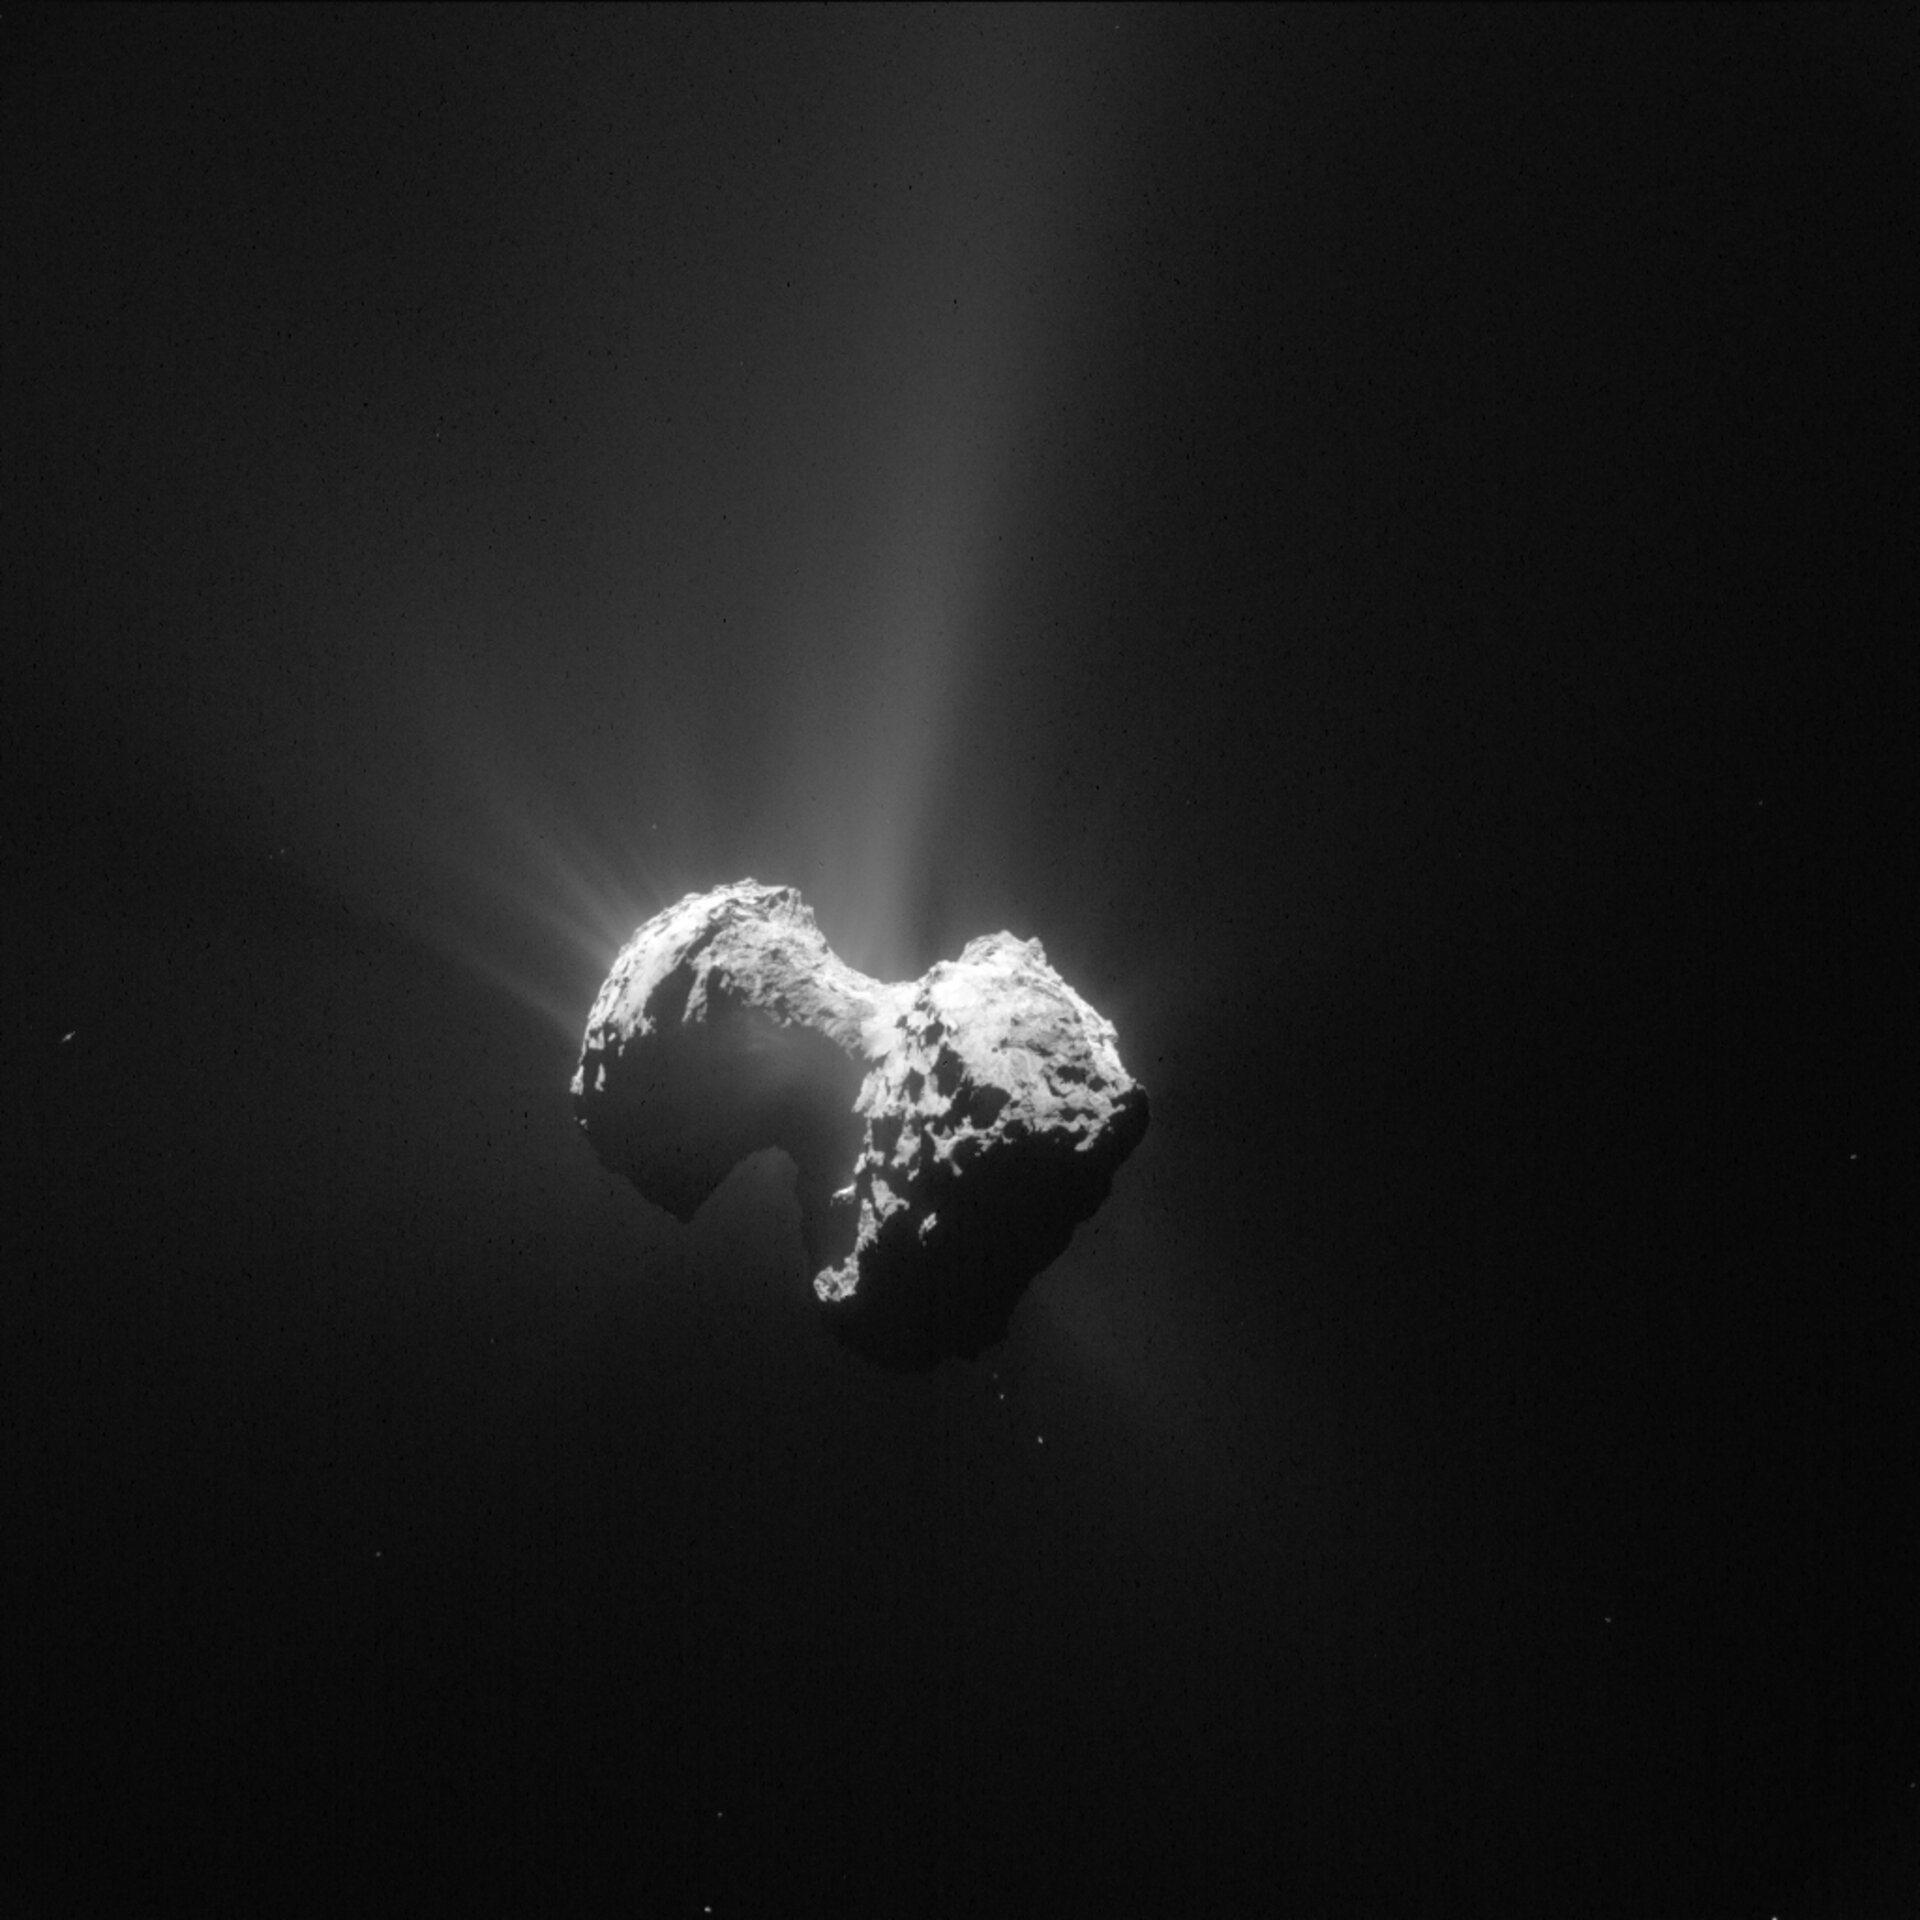 Comet on 20 July 2015 – NavCam